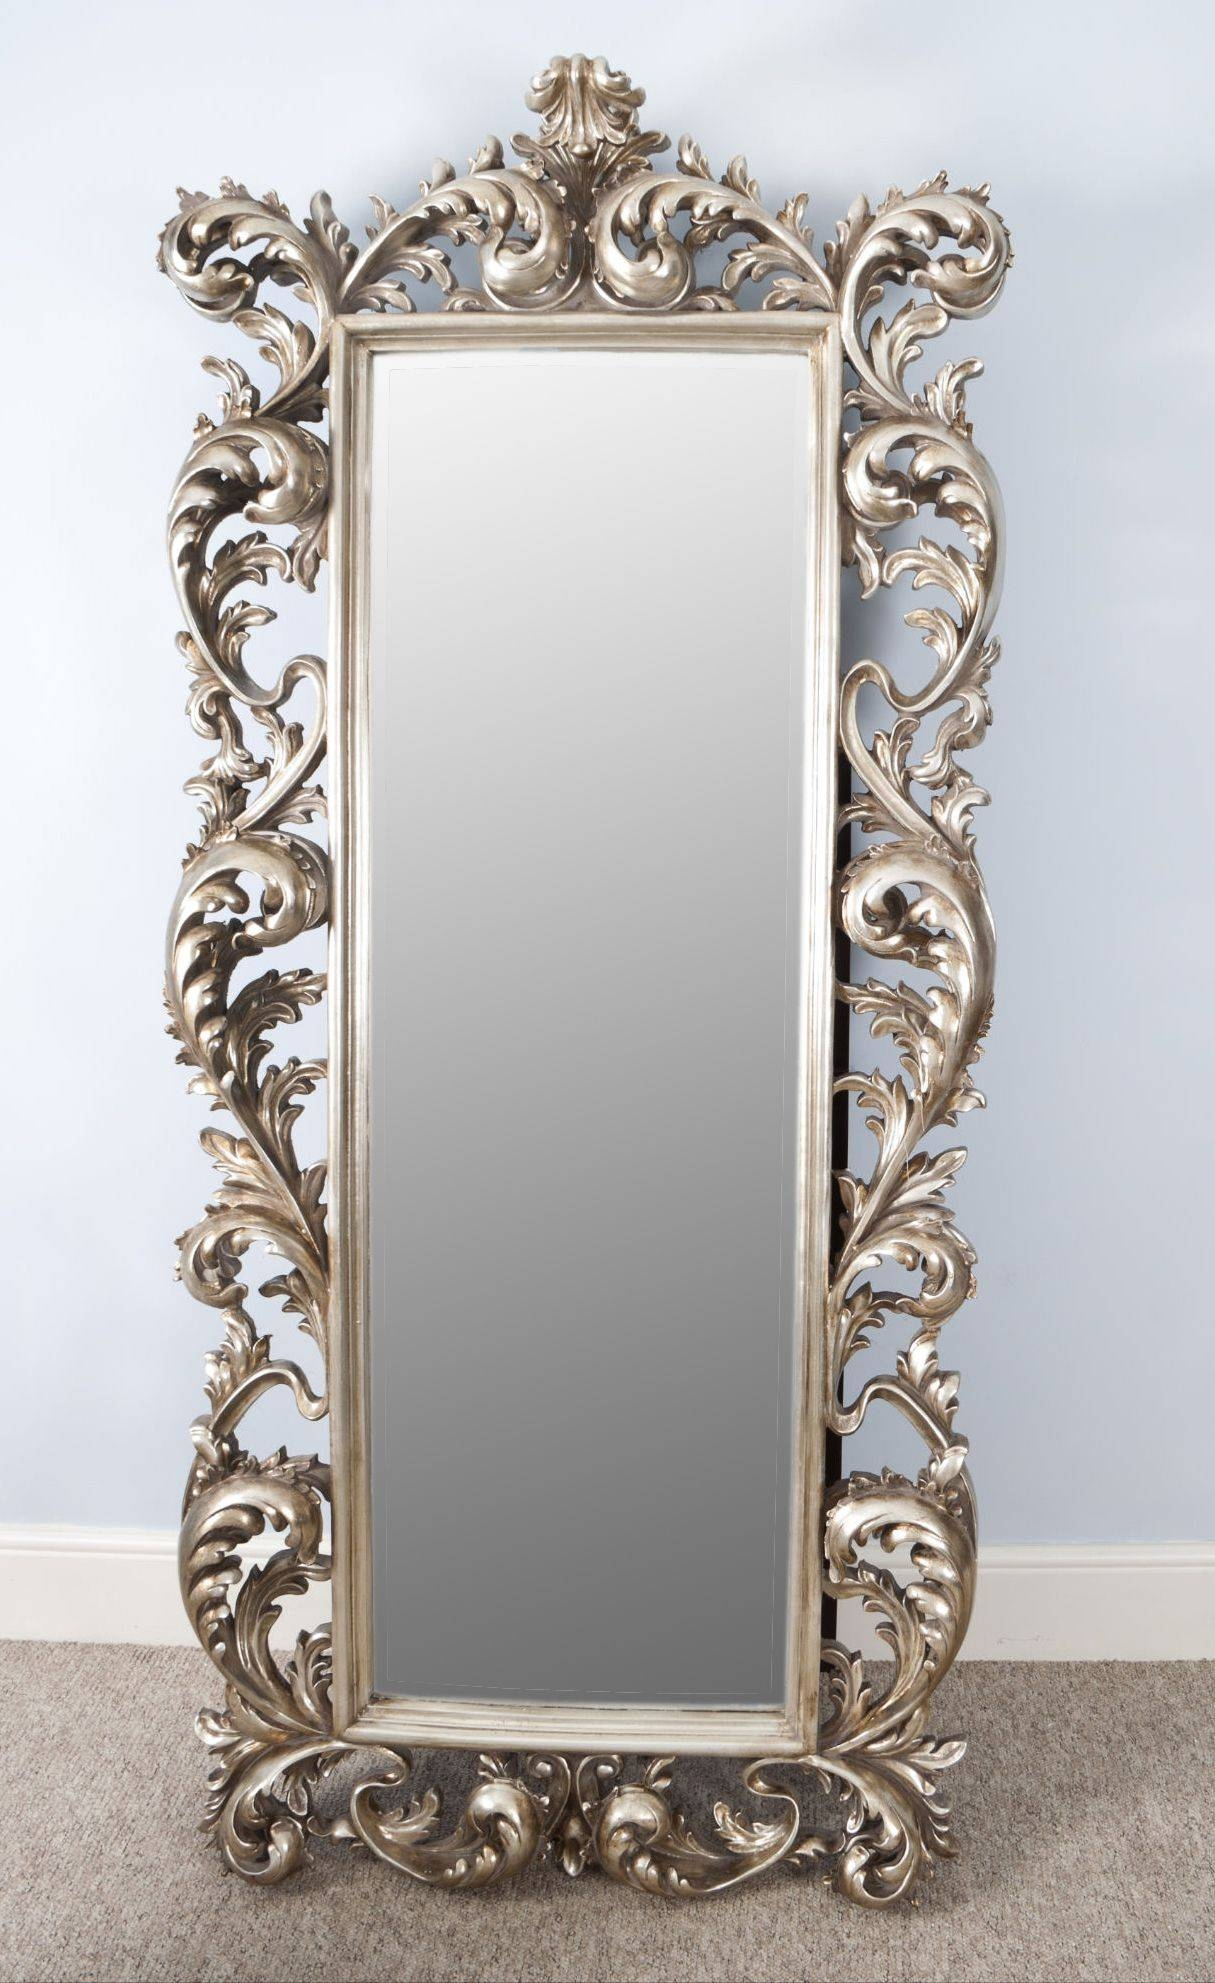 Magnificent Vintage Stand Up Mirror With Frameless Vintage Mirror throughout Vintage Stand Up Mirrors (Image 13 of 15)